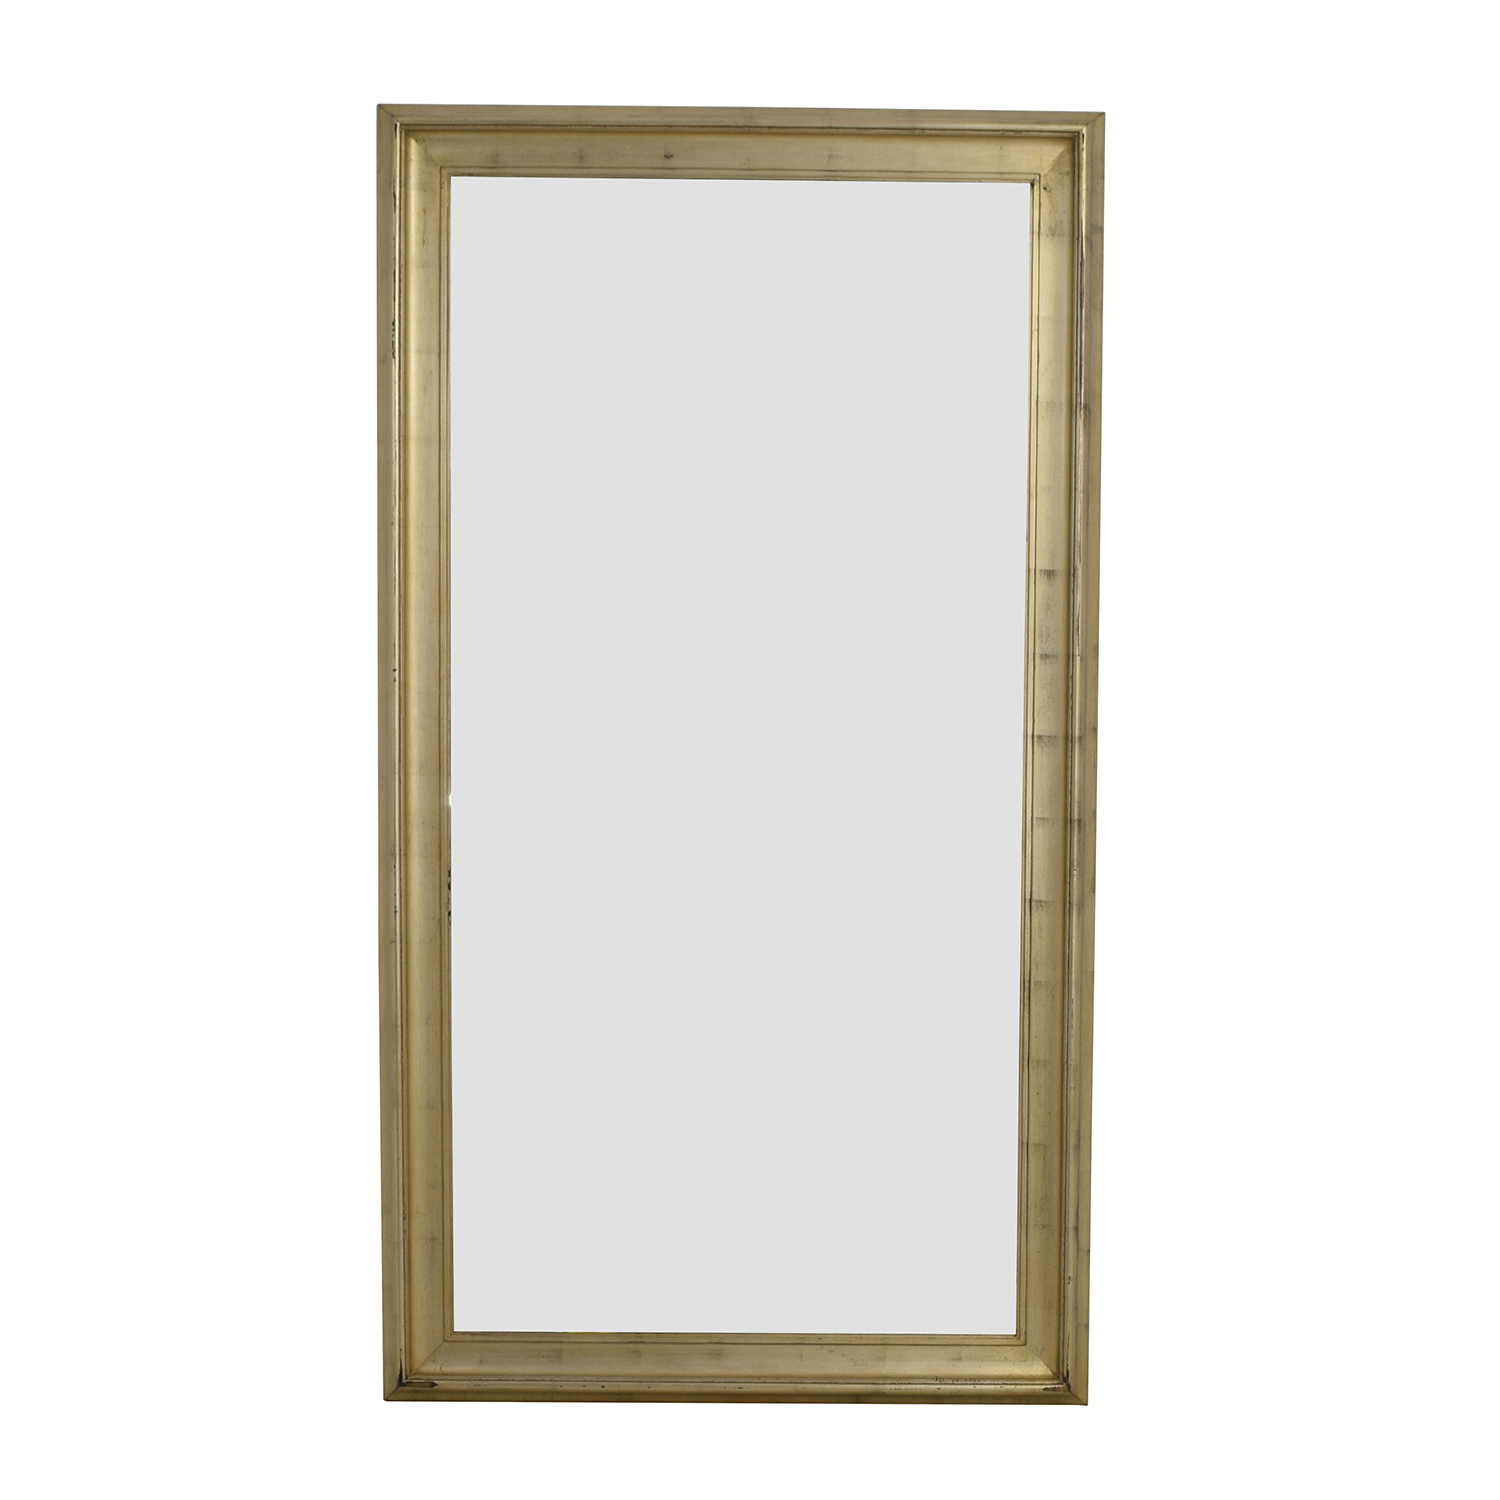 buy Standing Gold Framed Mirror Decor